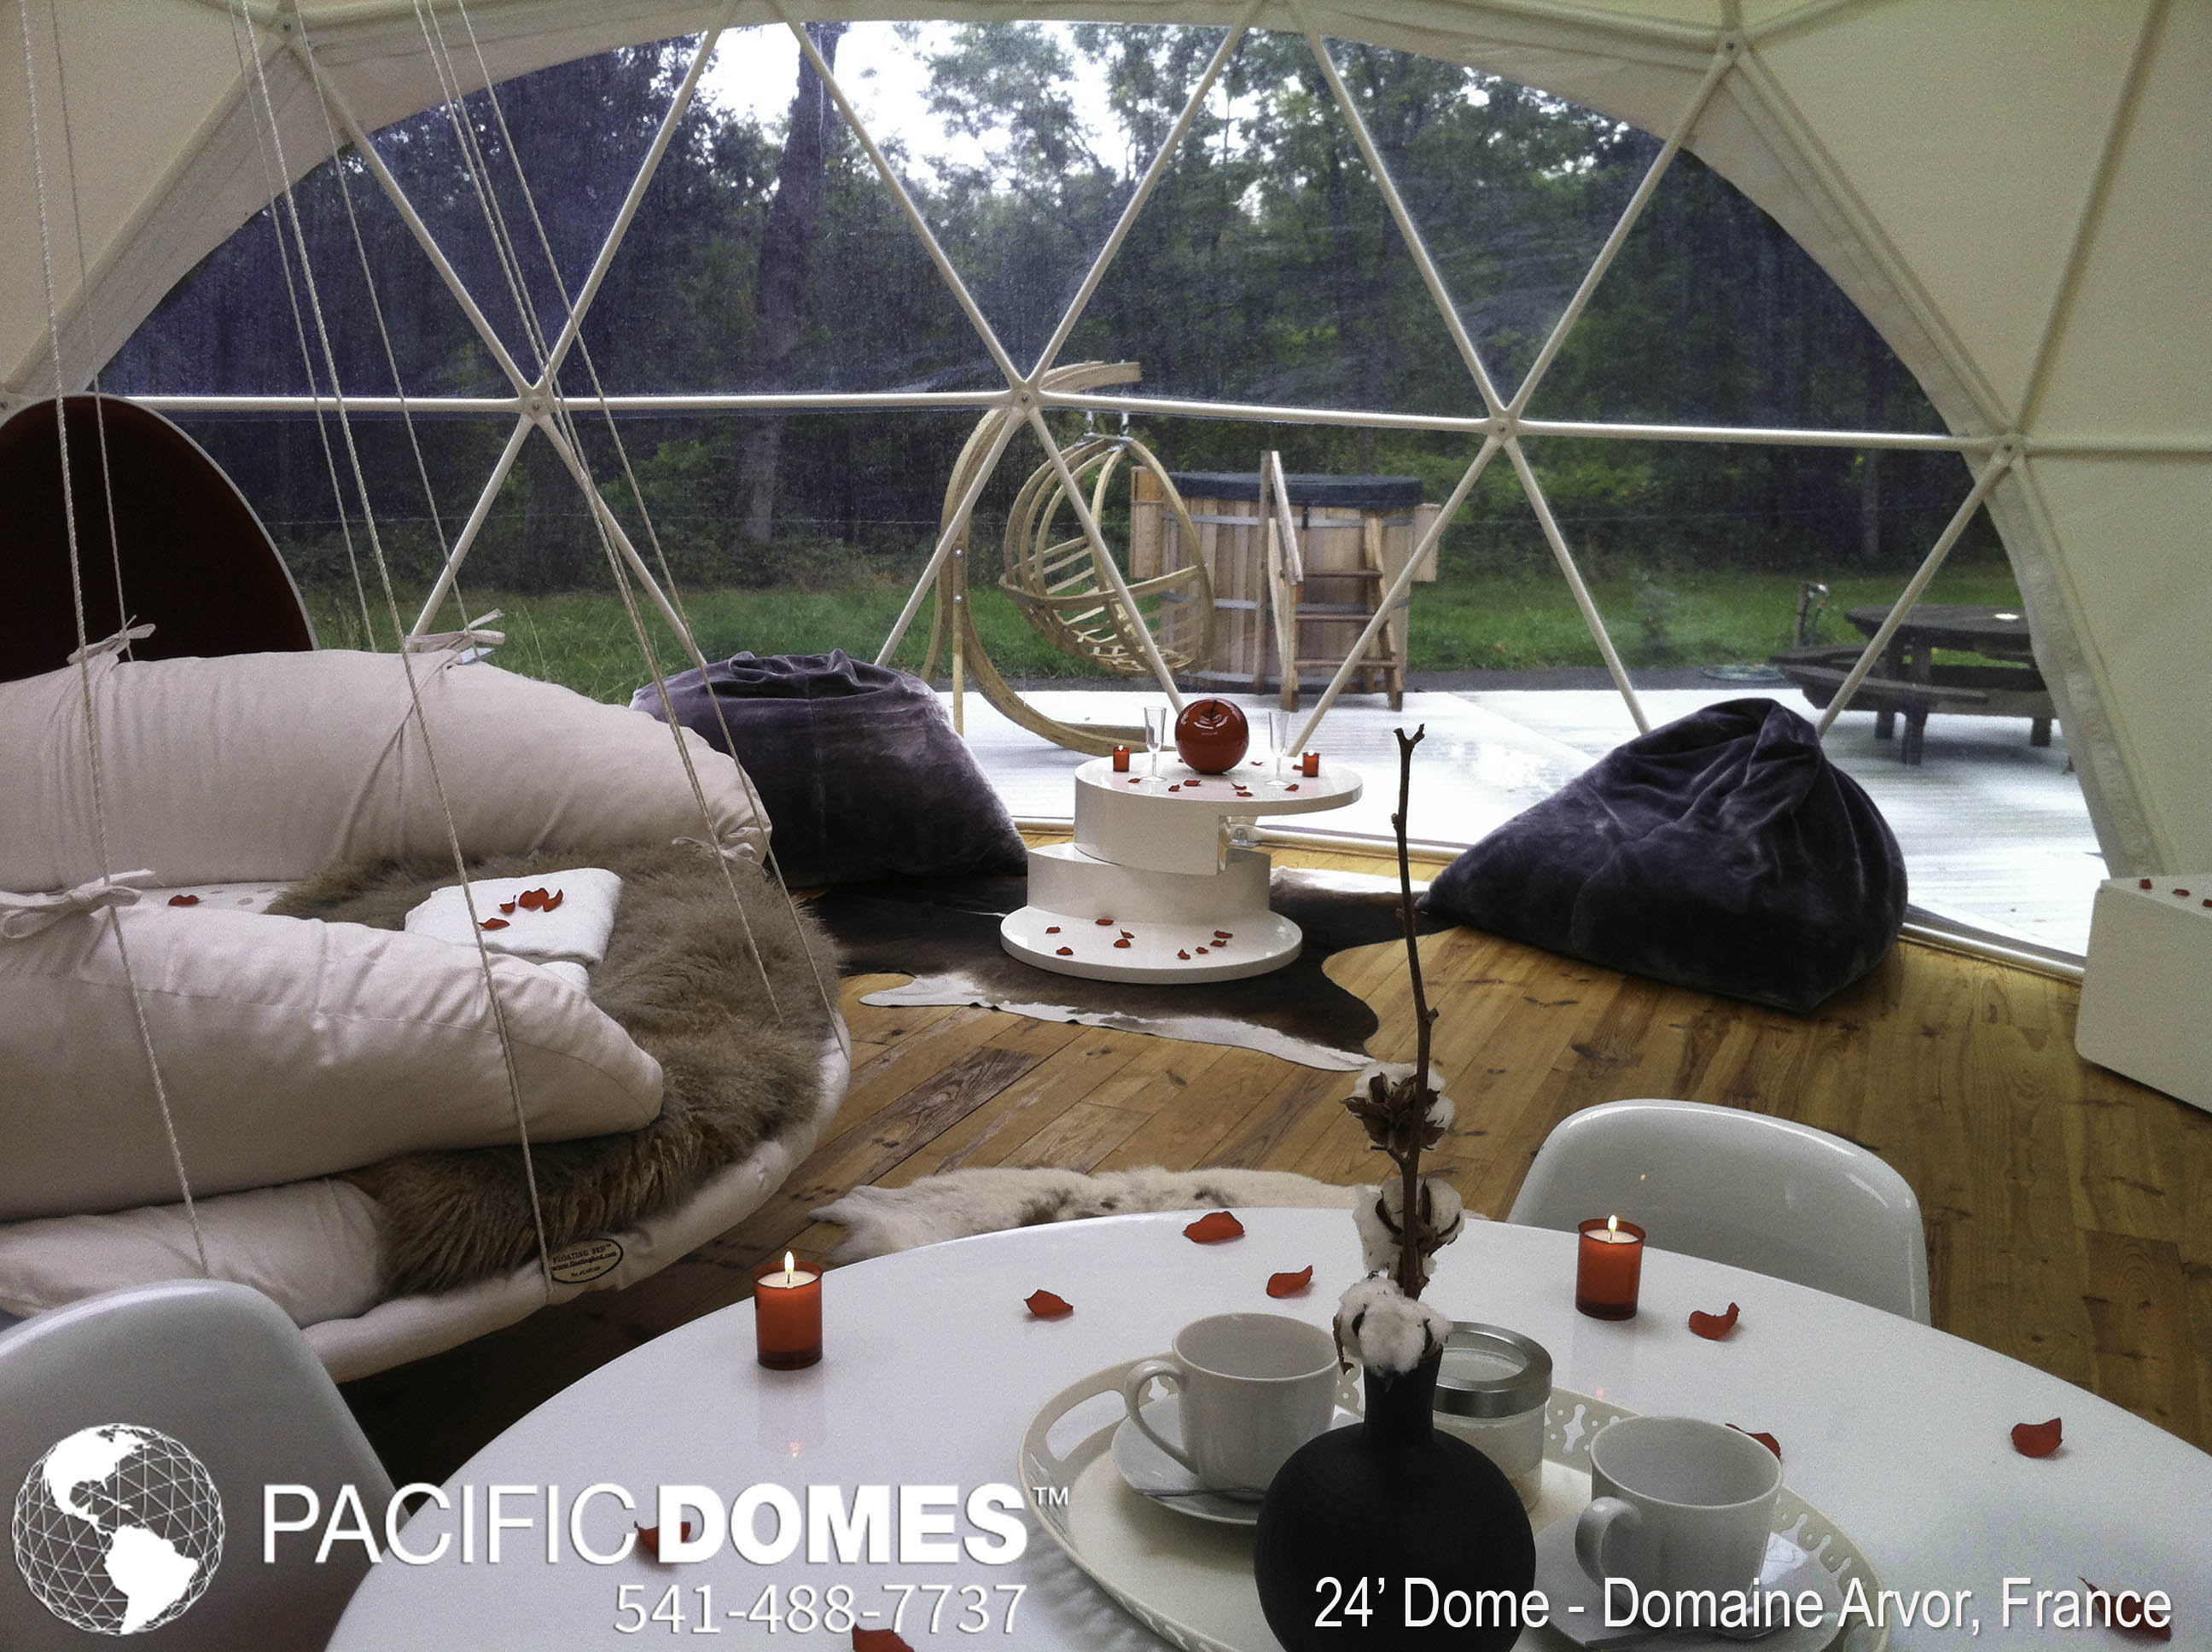 Domaine-Arvor-Pacific Domes - Copy - Copy - Copy